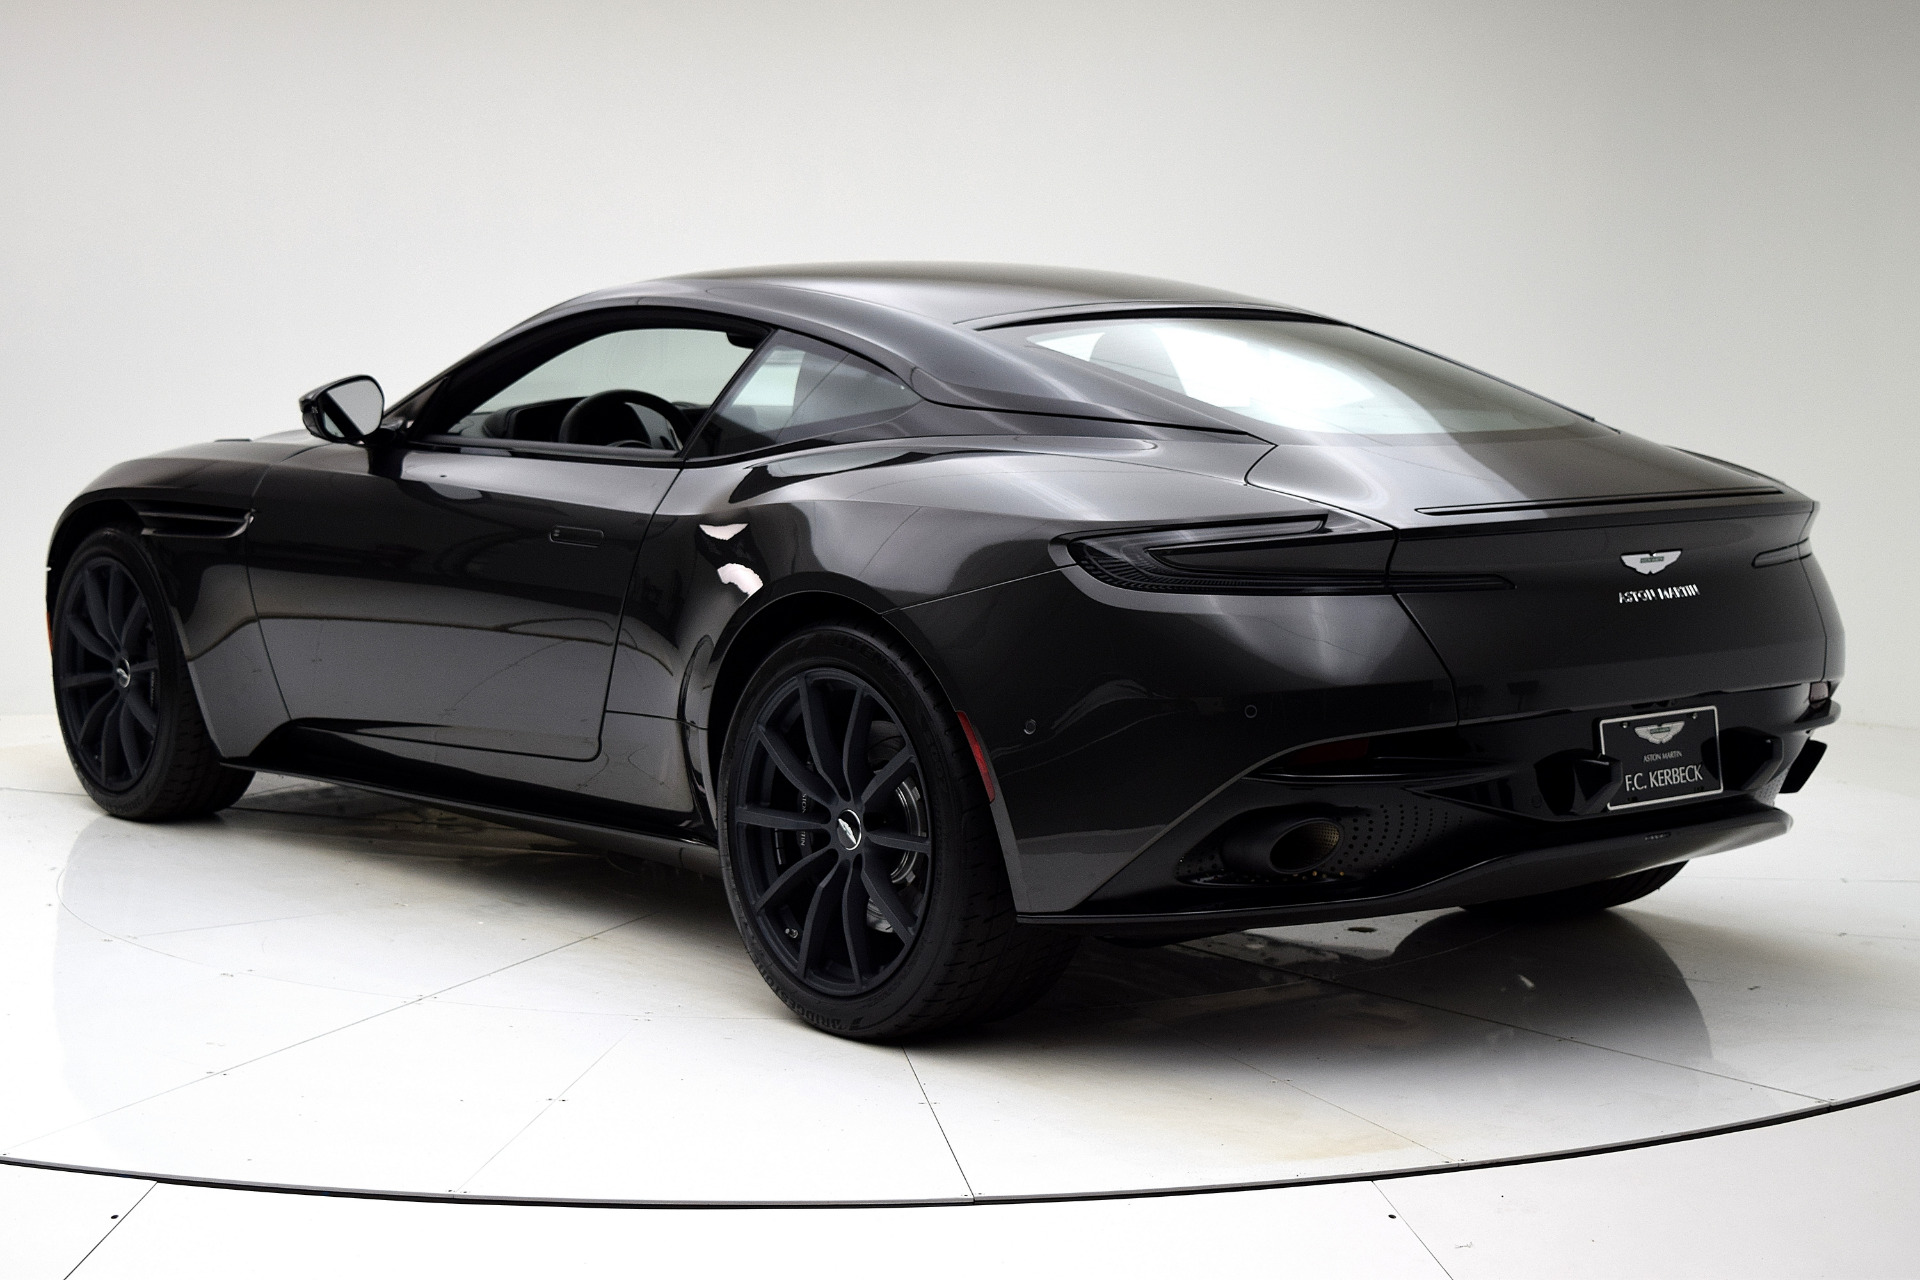 New 2020 Aston Martin Db11 Amr Coupe For Sale 272 496 F C Kerbeck Aston Martin Stock 20a107